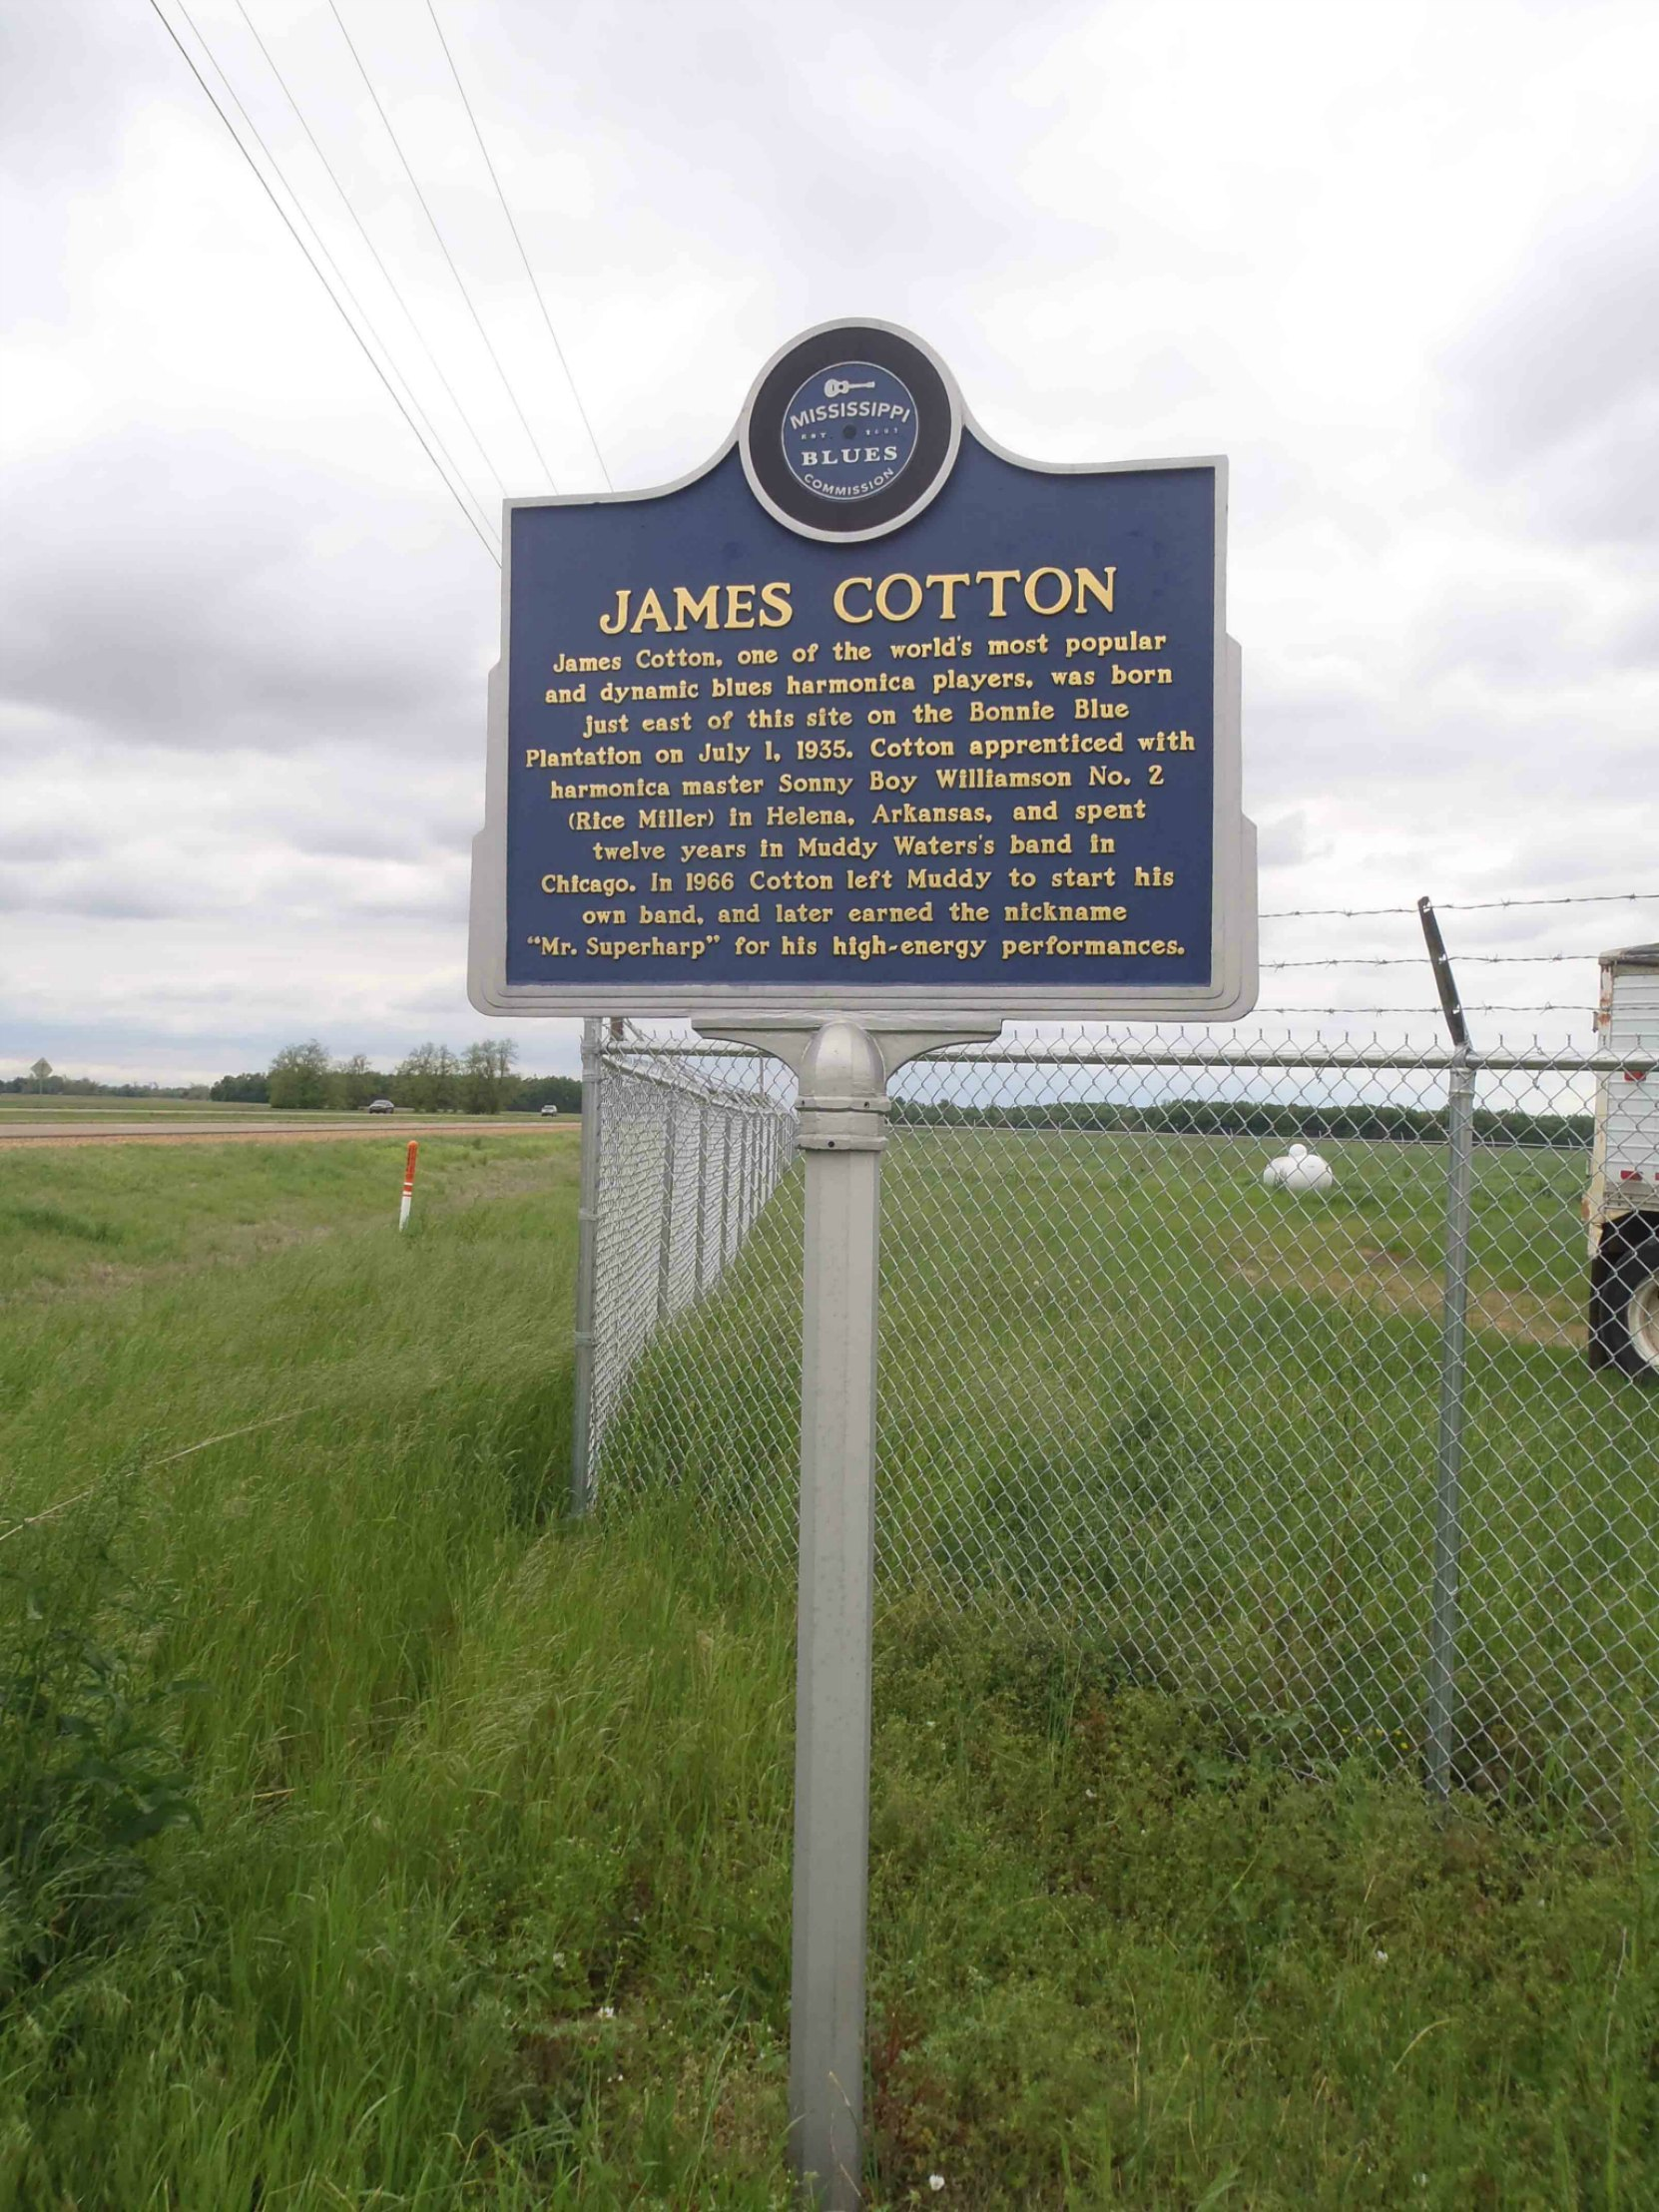 Mississippi Blues Trail marker for James Cotton, Highway 61 and Bonnie Blue Road, Tunica County, Mississippi